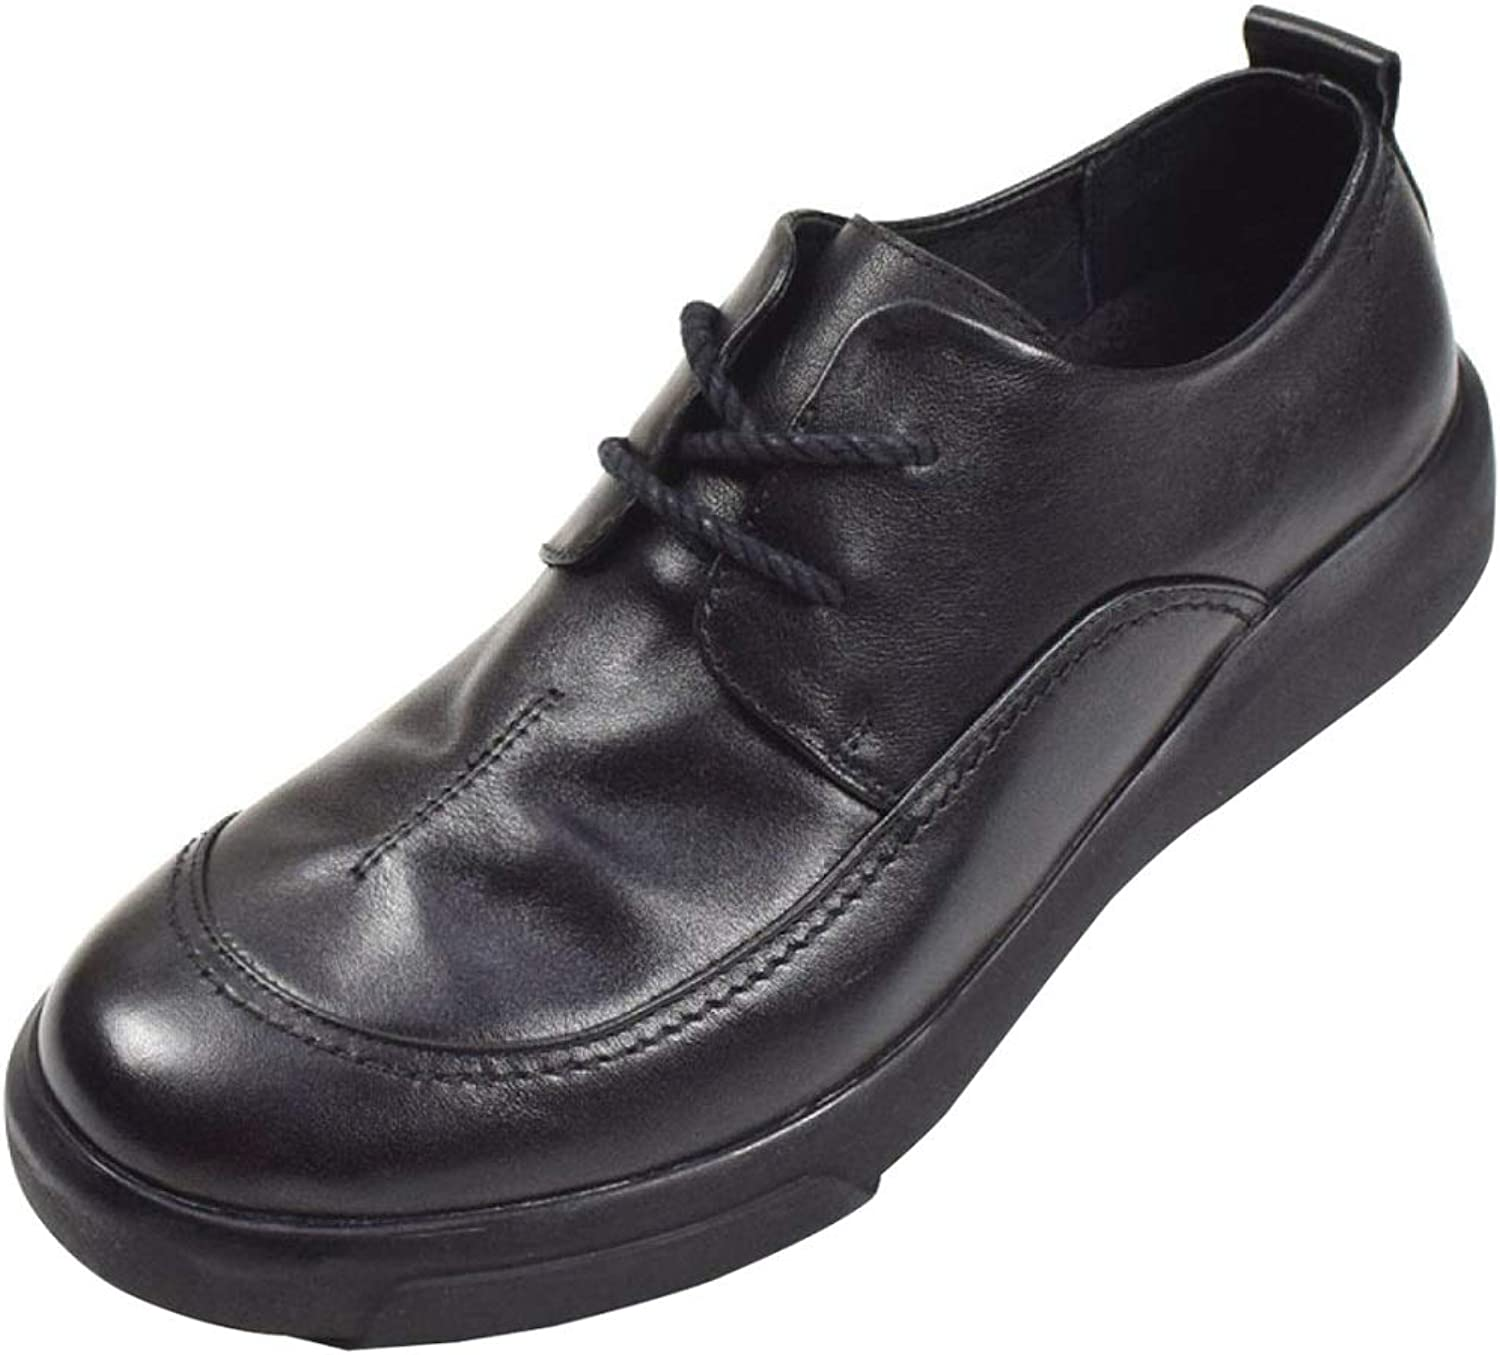 Men's Casual shoes At The End Of Soft shoes Lace shoes